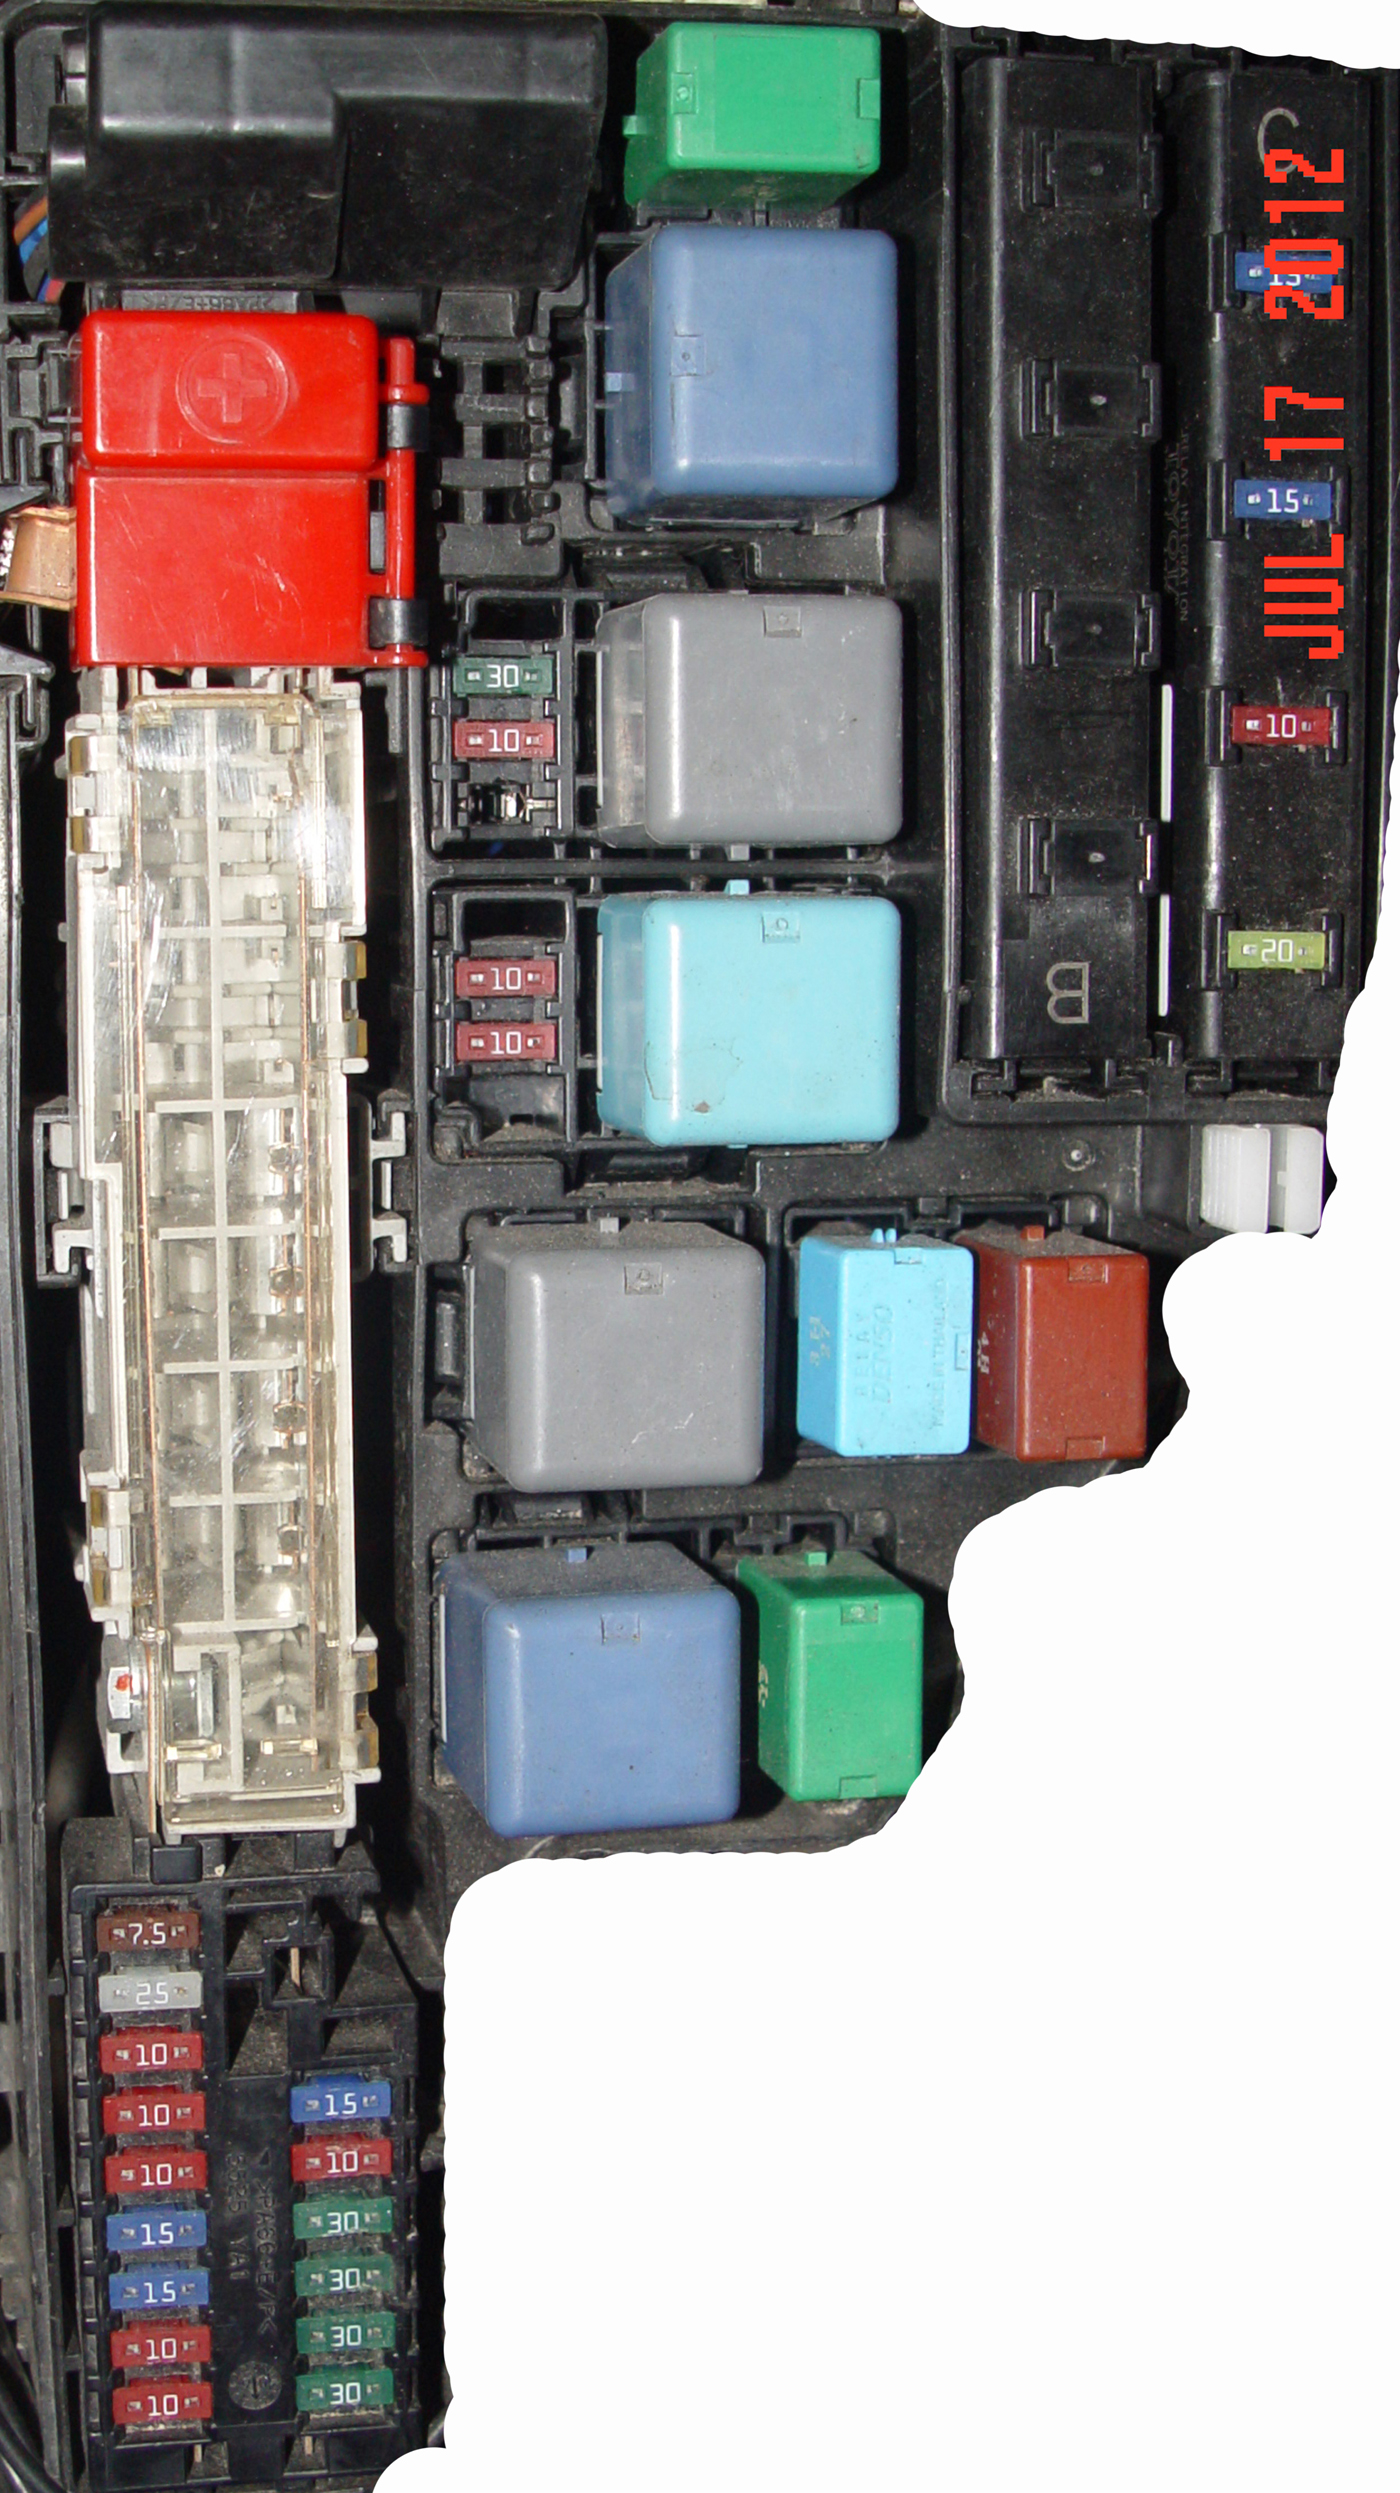 2004 toyota prius fuse box diagram iirGtIL 2008 toyota prius fuse box 2007 toyota prius fuse box \u2022 free 2009 prius fuse box diagram at gsmportal.co